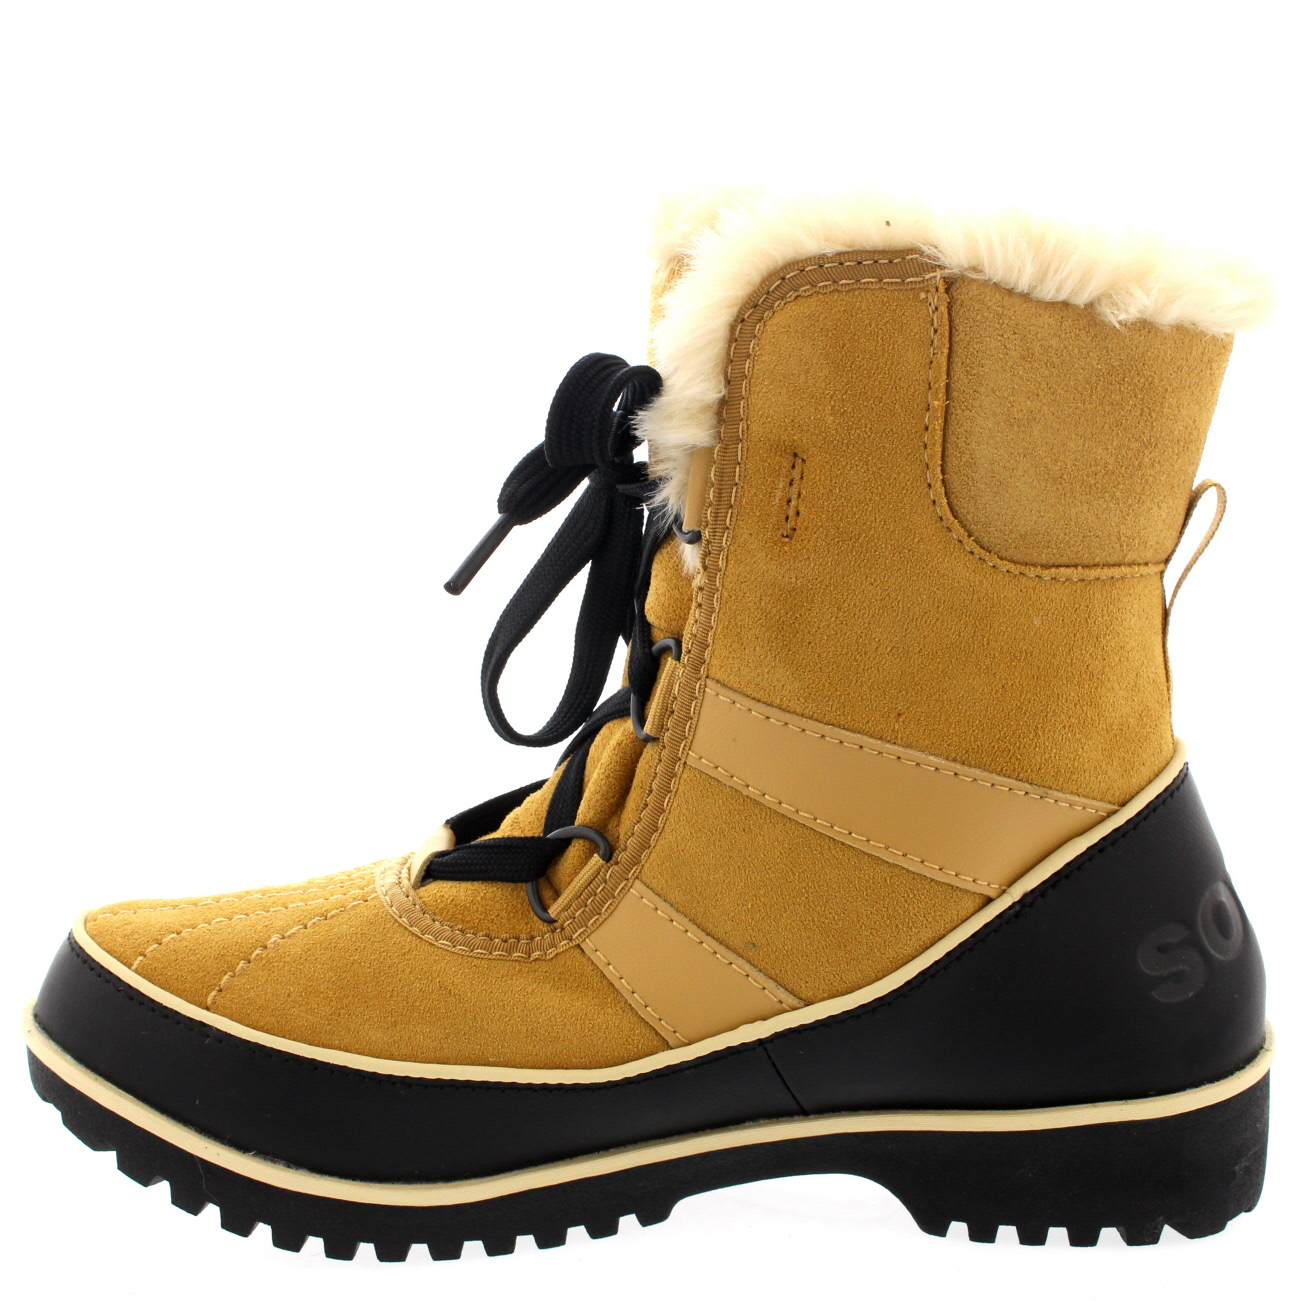 Wonderful Clothes Shoes Amp Accessories Gt Women39s Shoes Gt Boots